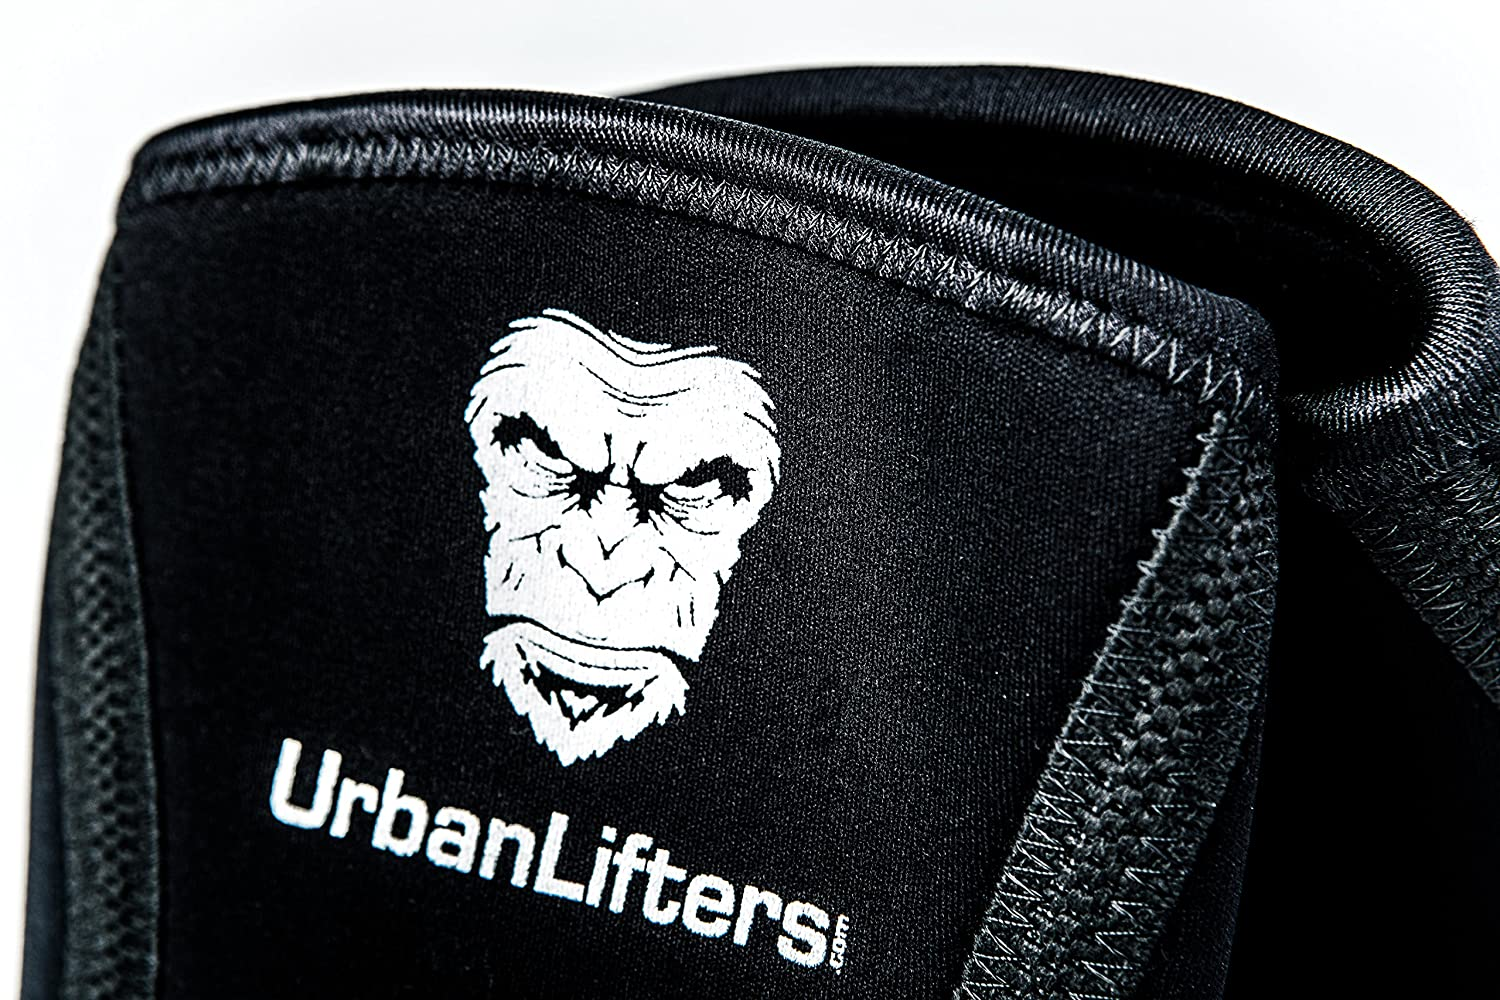 Urban Lifters Elbow Sleeves WODs Suitable for Men /& Woman. WeightLifting Pair injury prevention and performance enhancement for Pressing - Excellent Support Powerlifting /& Gym Goers Crossfit compression warmth